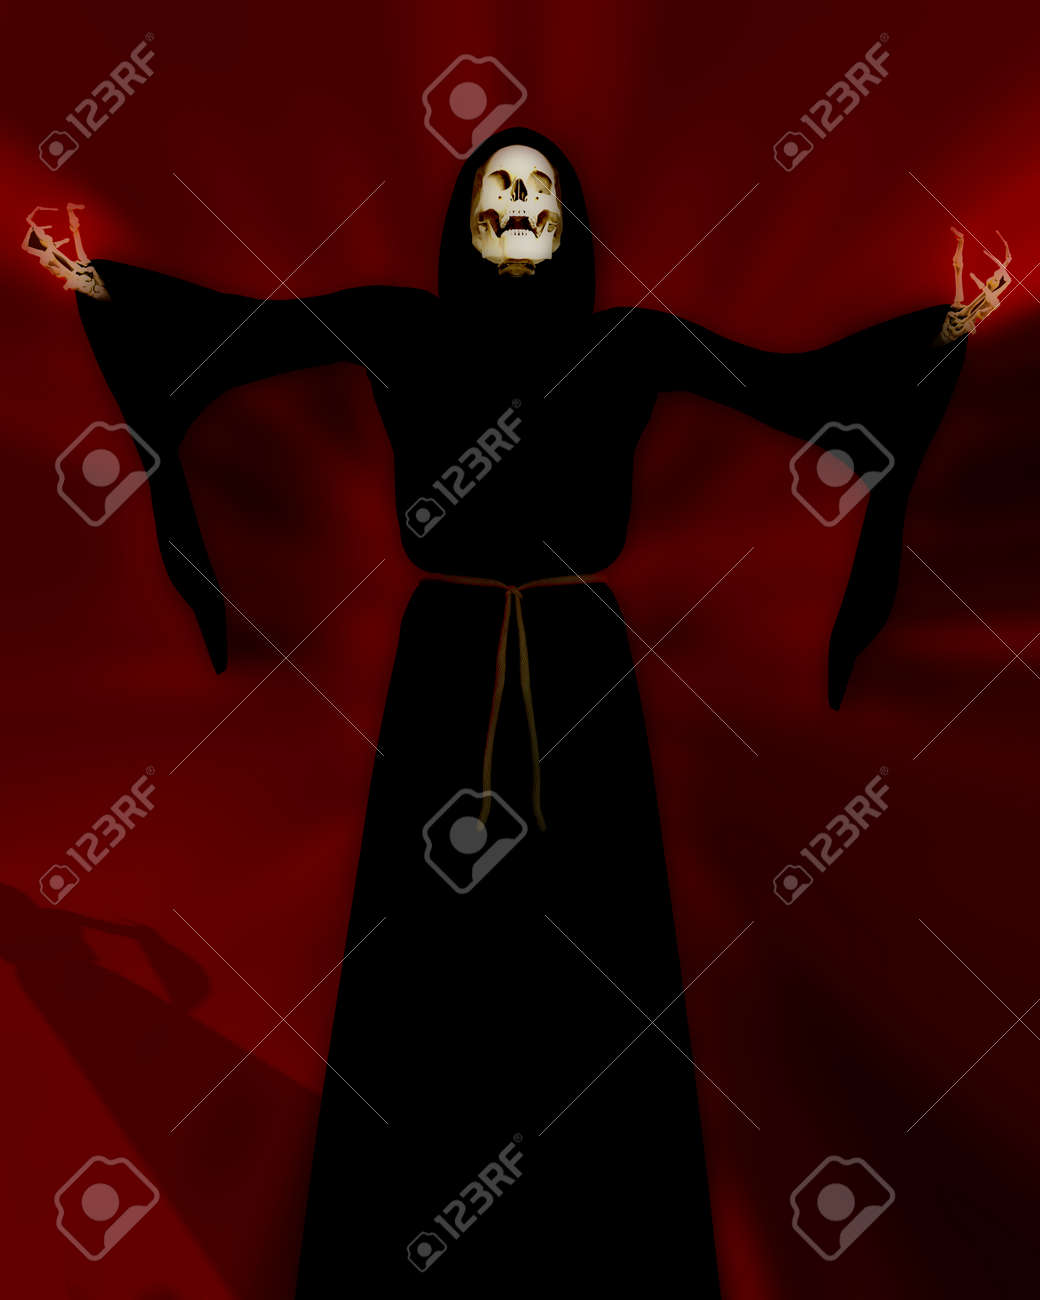 An image of the grim reaper or death as he is more commonly called. Stock Photo - 1478110